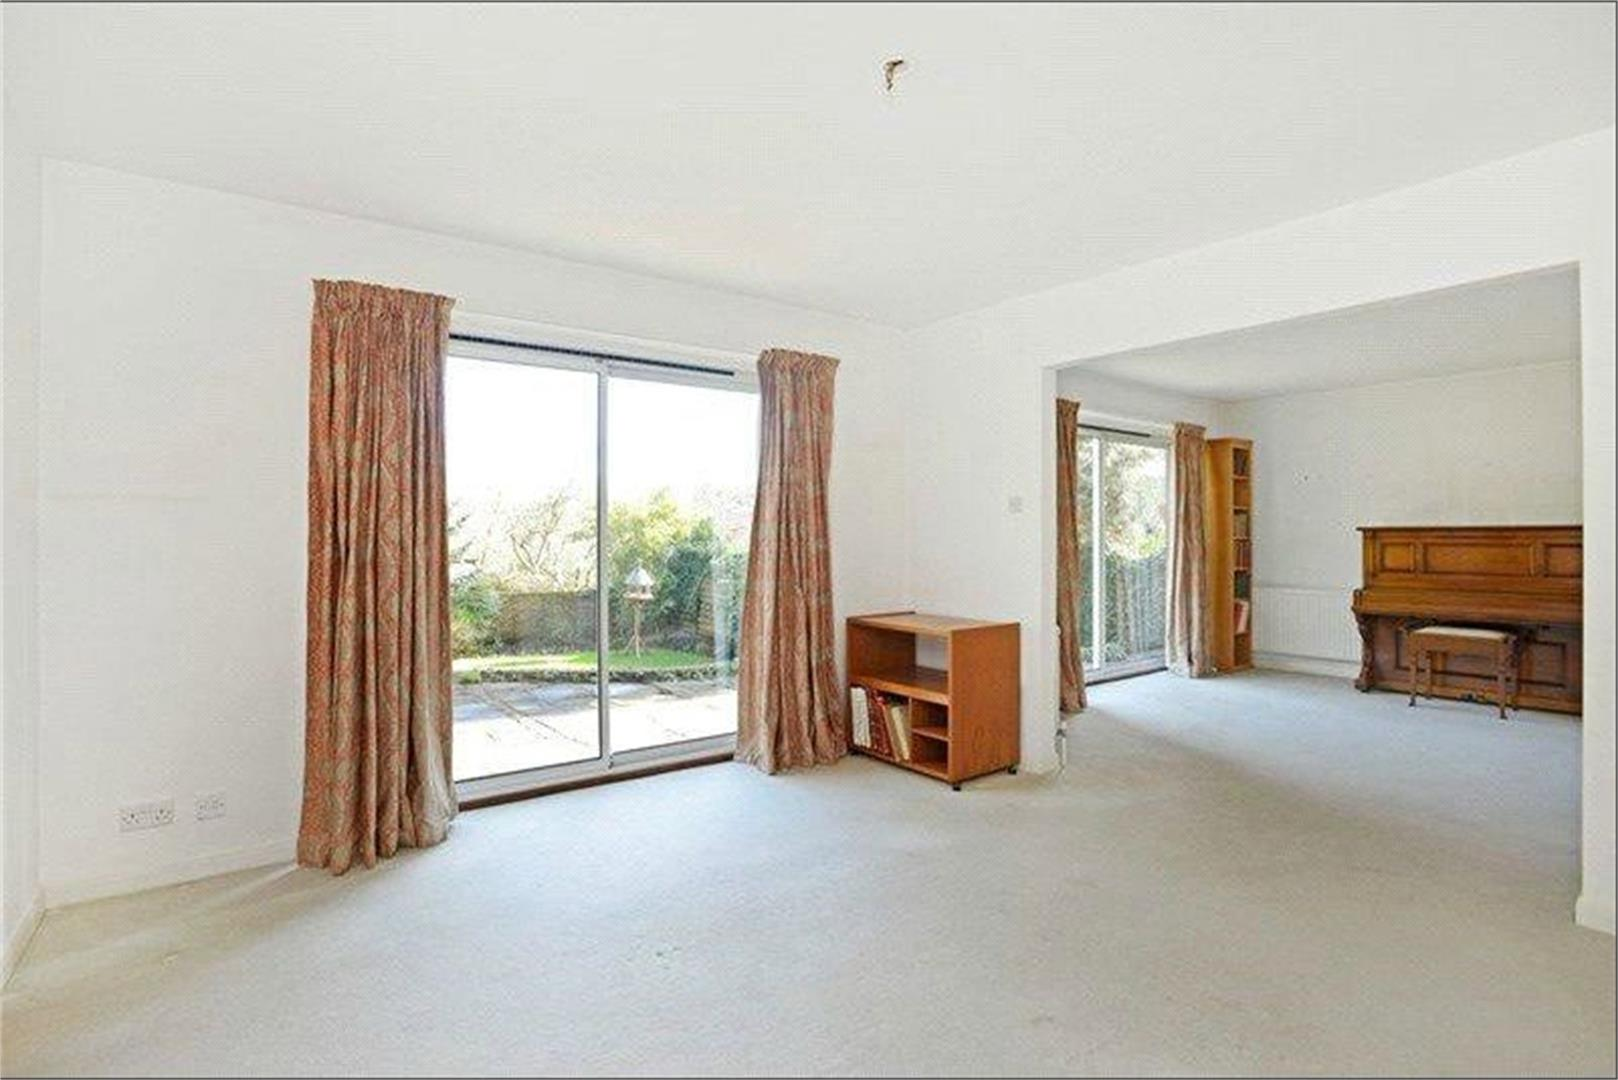 4 bed to rent - (Property Image 2)